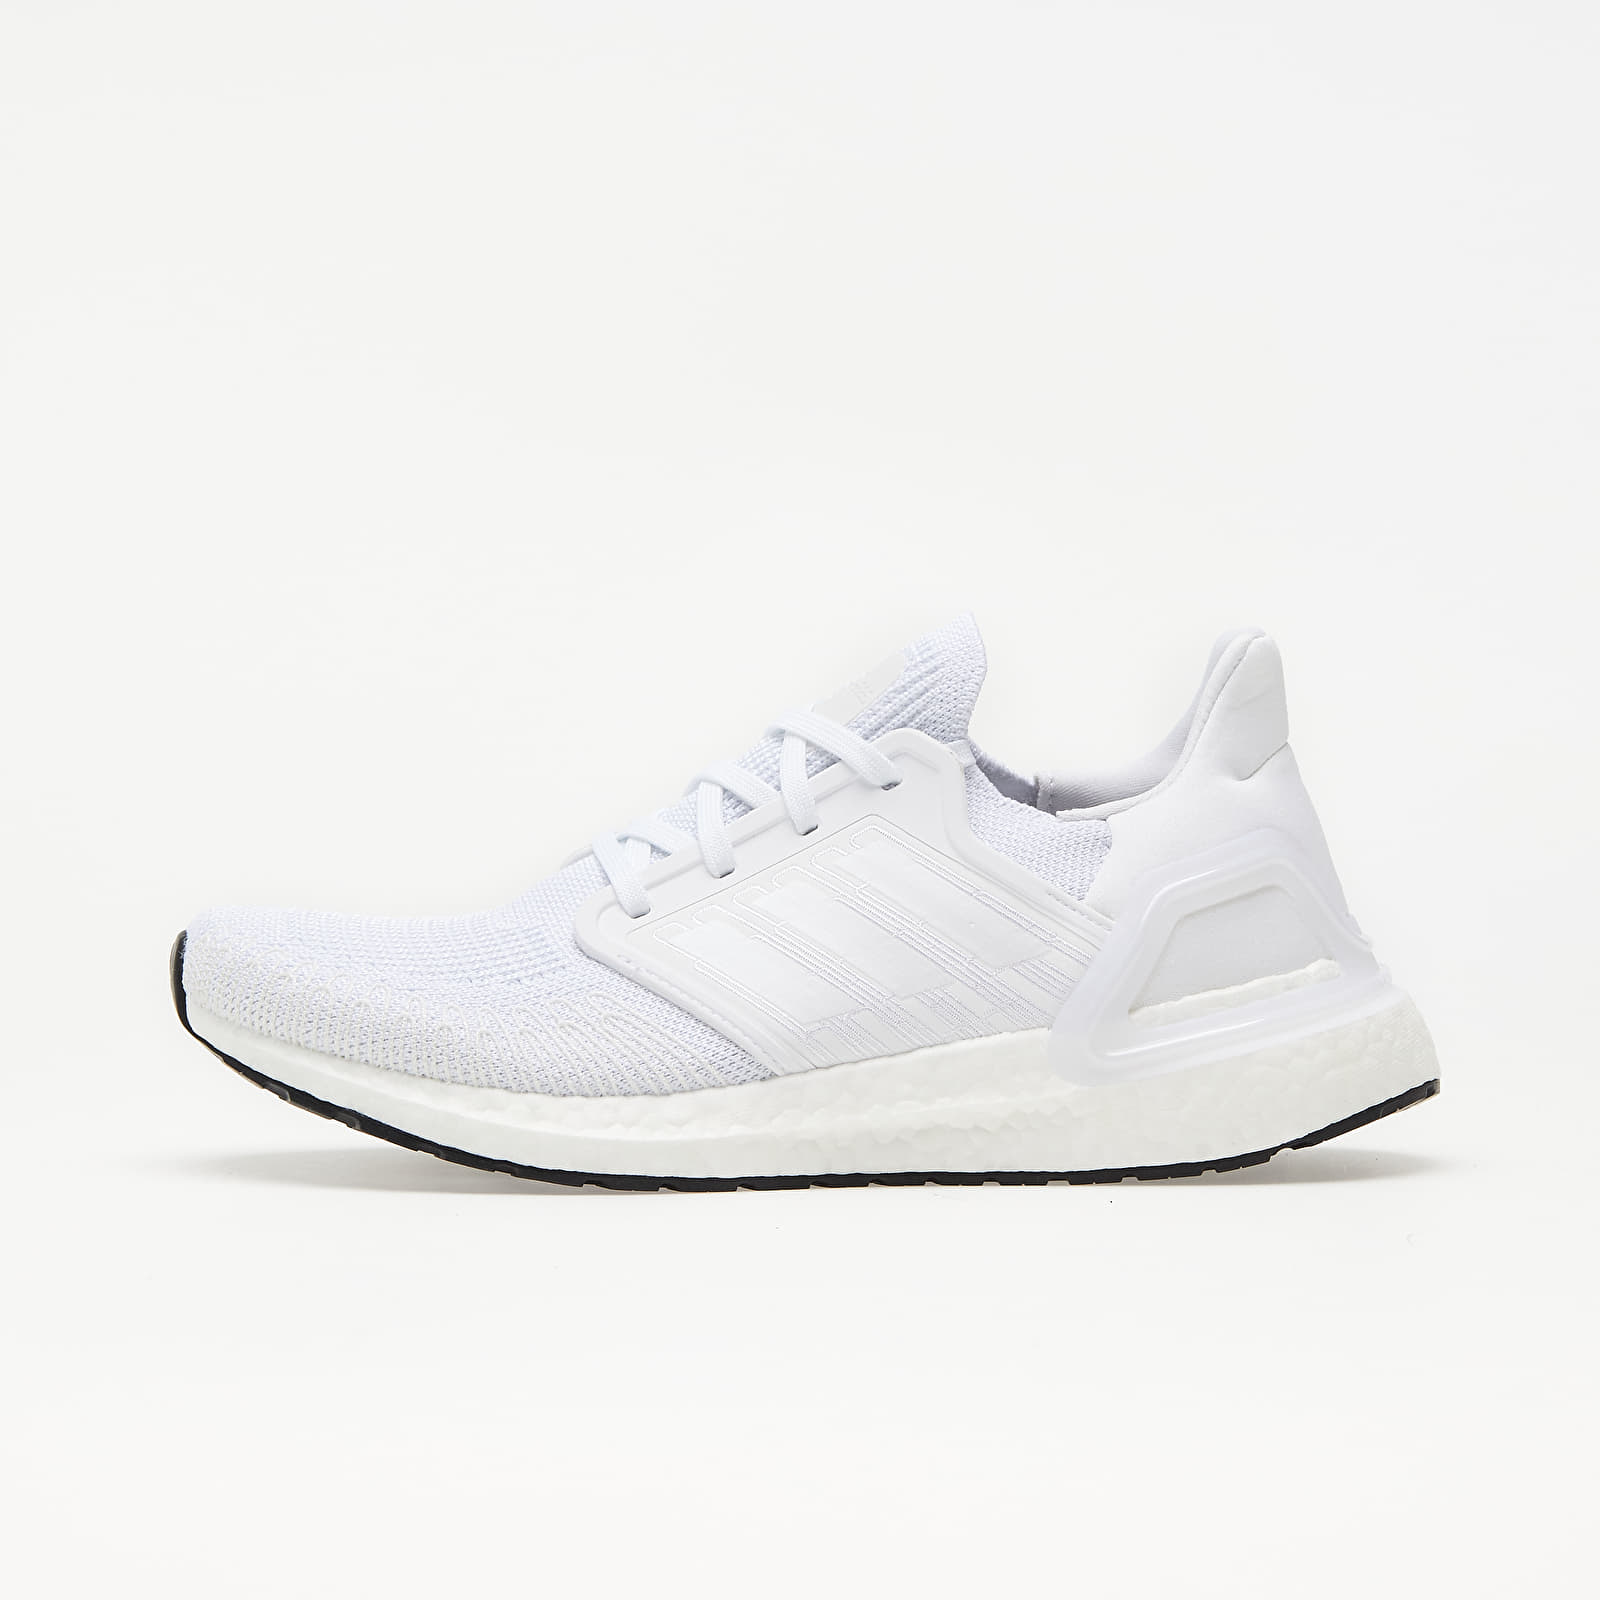 Men's shoes adidas UltraBOOST 20 Ftw White/ Ftw White/ Core Black